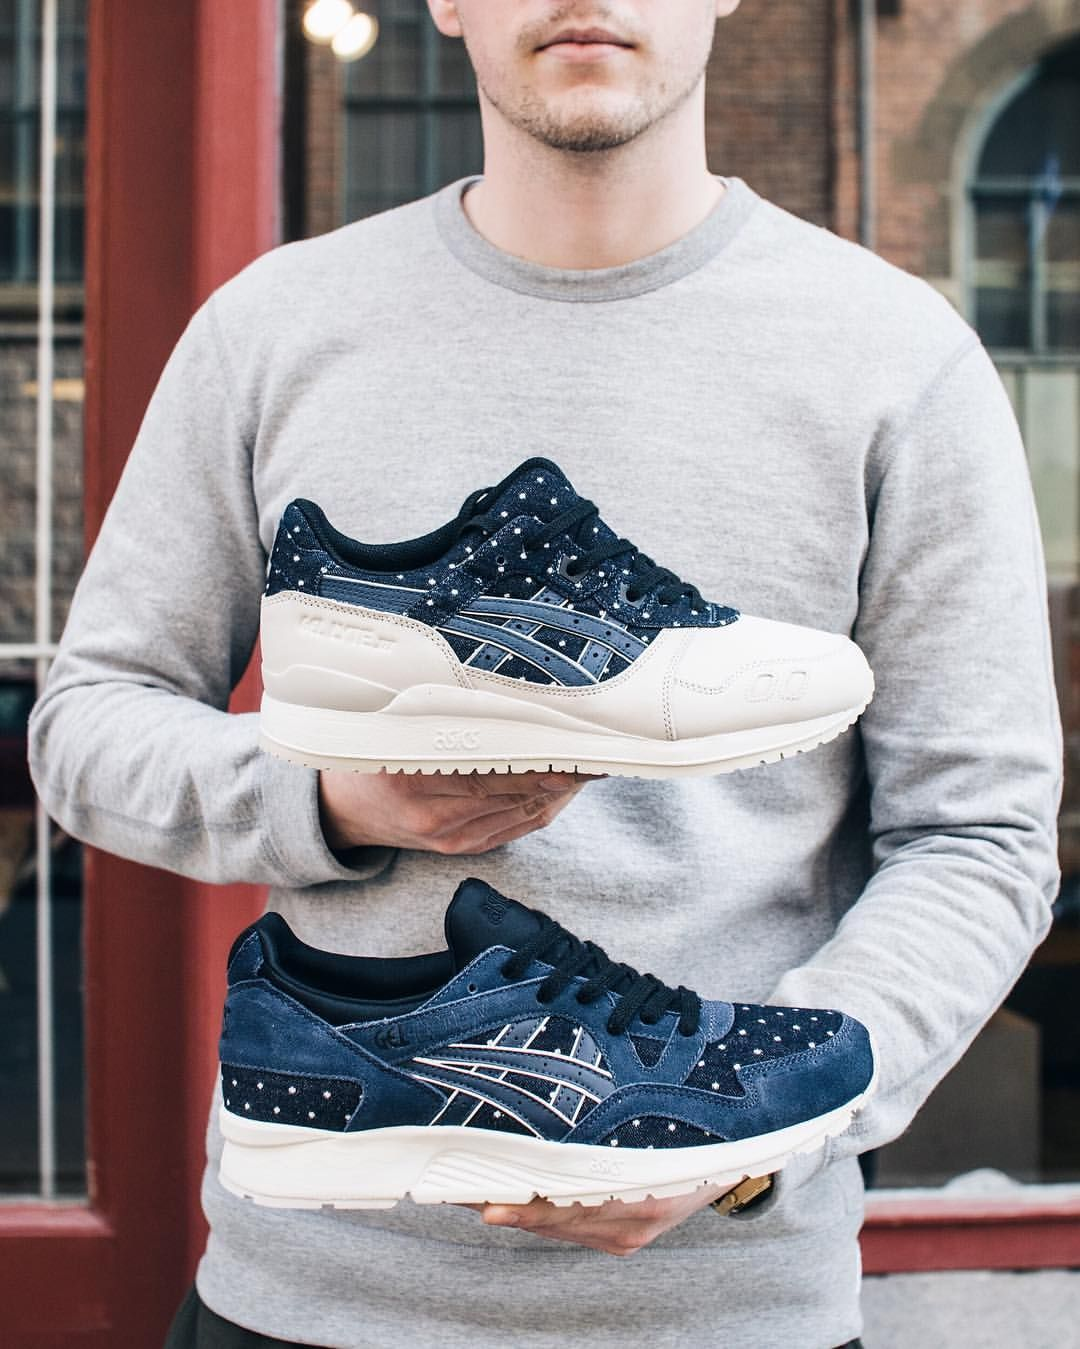 "The ASICS Gel-Lyte III and Gel-Lyte V from the ""Japanese Textile Pack"" with premium denim made from the Nihon Mepmu Mill () drops tomorrow at Sneakersnstuff! Any remaining pairs will be available online 1 PM (CEST) at Sneakersnstuff.com. #sneakersnstuff #asics #gellyteiii #gellytev"